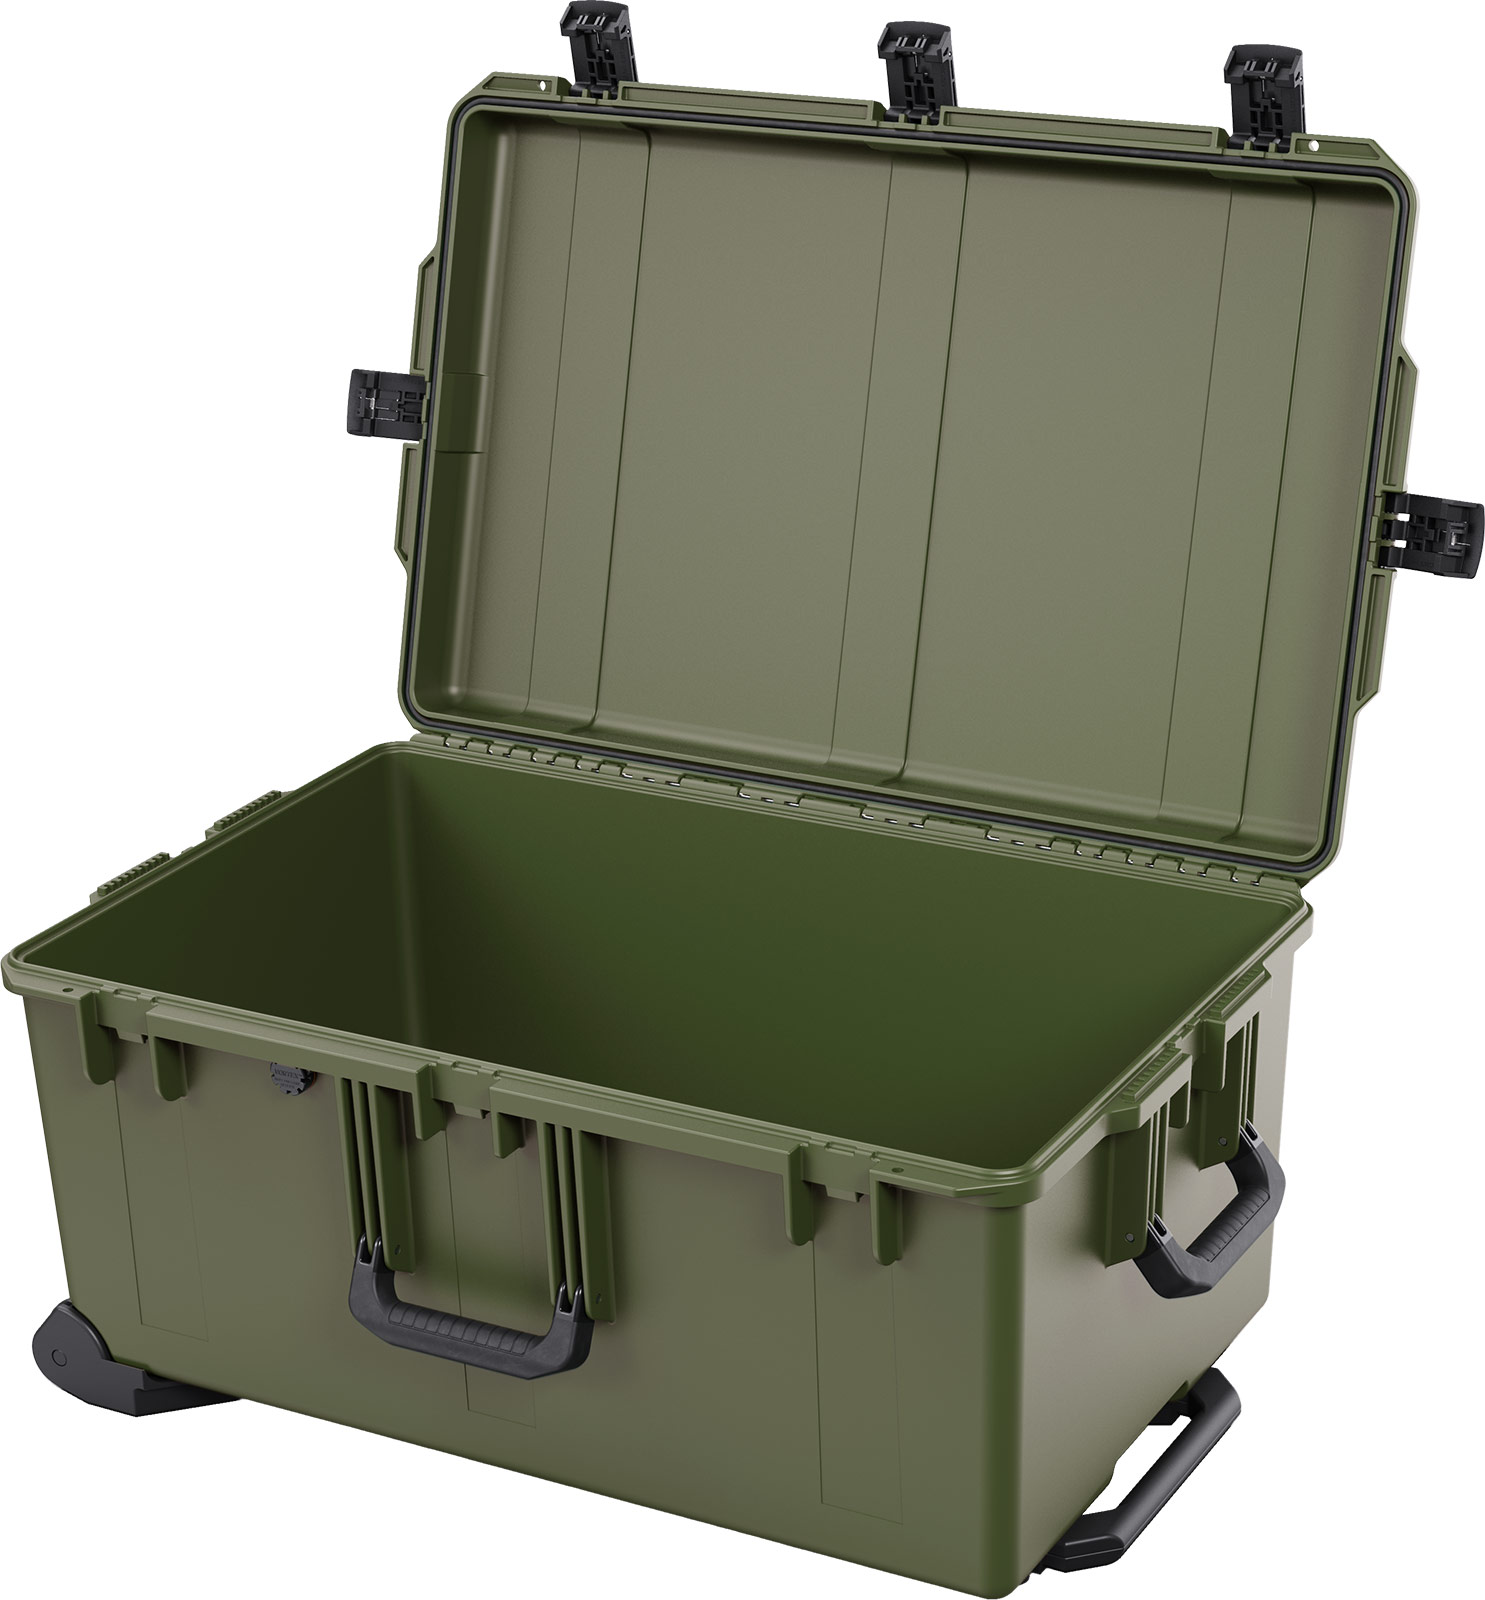 pelican im2975 large travel case storm